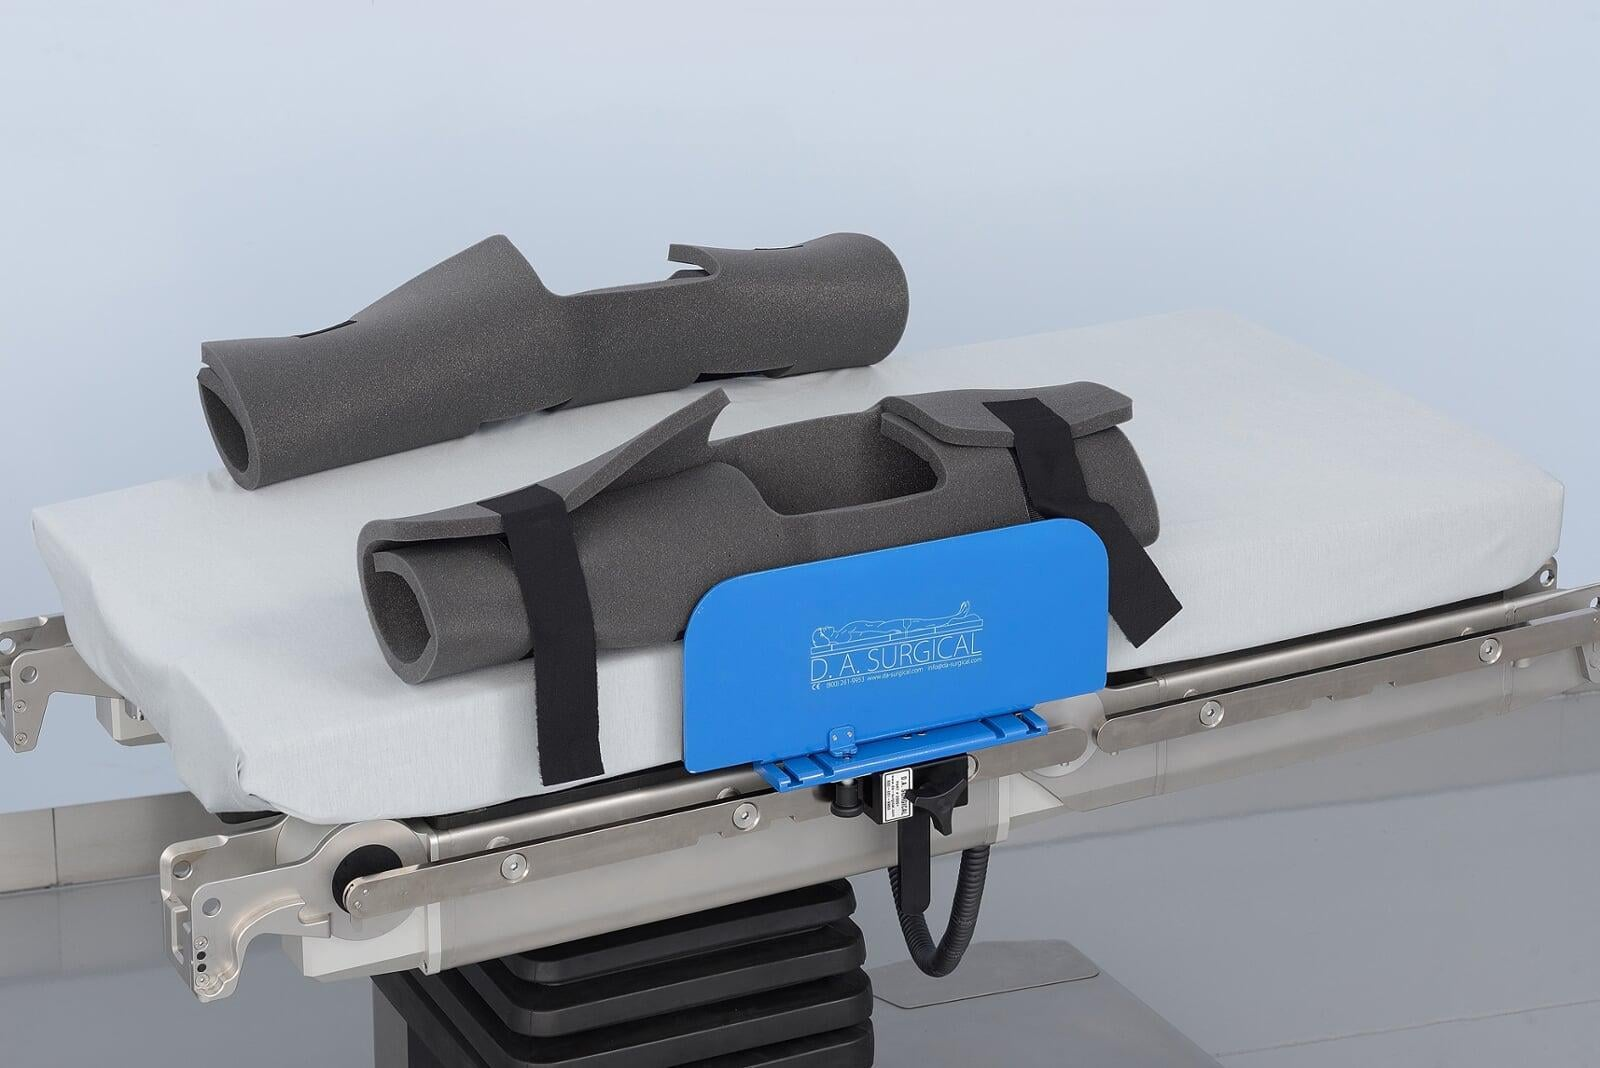 ArmGuard Procedure Pack fits Rail-Mounted and Toboggan-style sleds